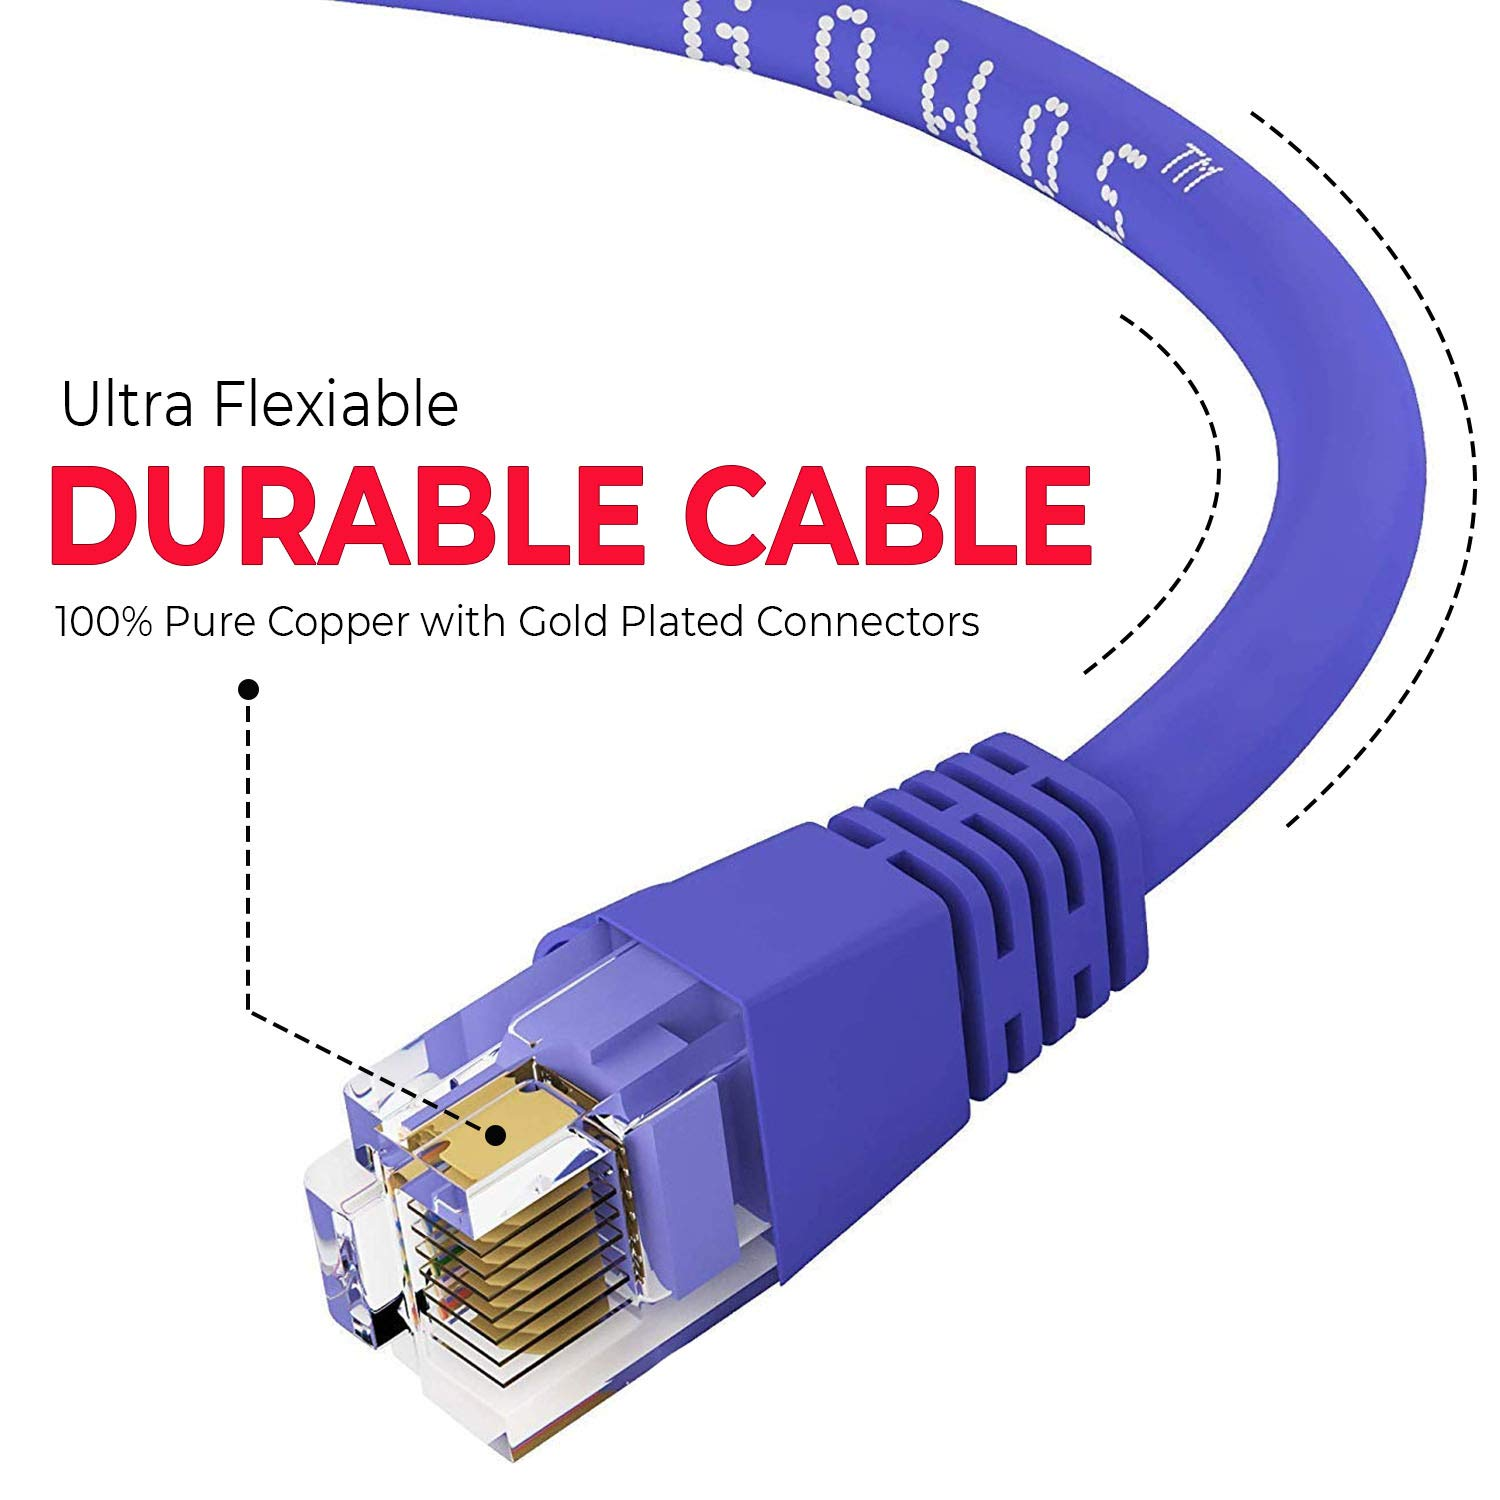 1Gigabit//Sec High Speed LAN Internet//Patch Cable Blue GOWOS Cat5e Ethernet Cable 50-Pack - 9 Feet 350MHz 24AWG Network Cable with Gold Plated RJ45 Snagless//Molded//Booted Connector